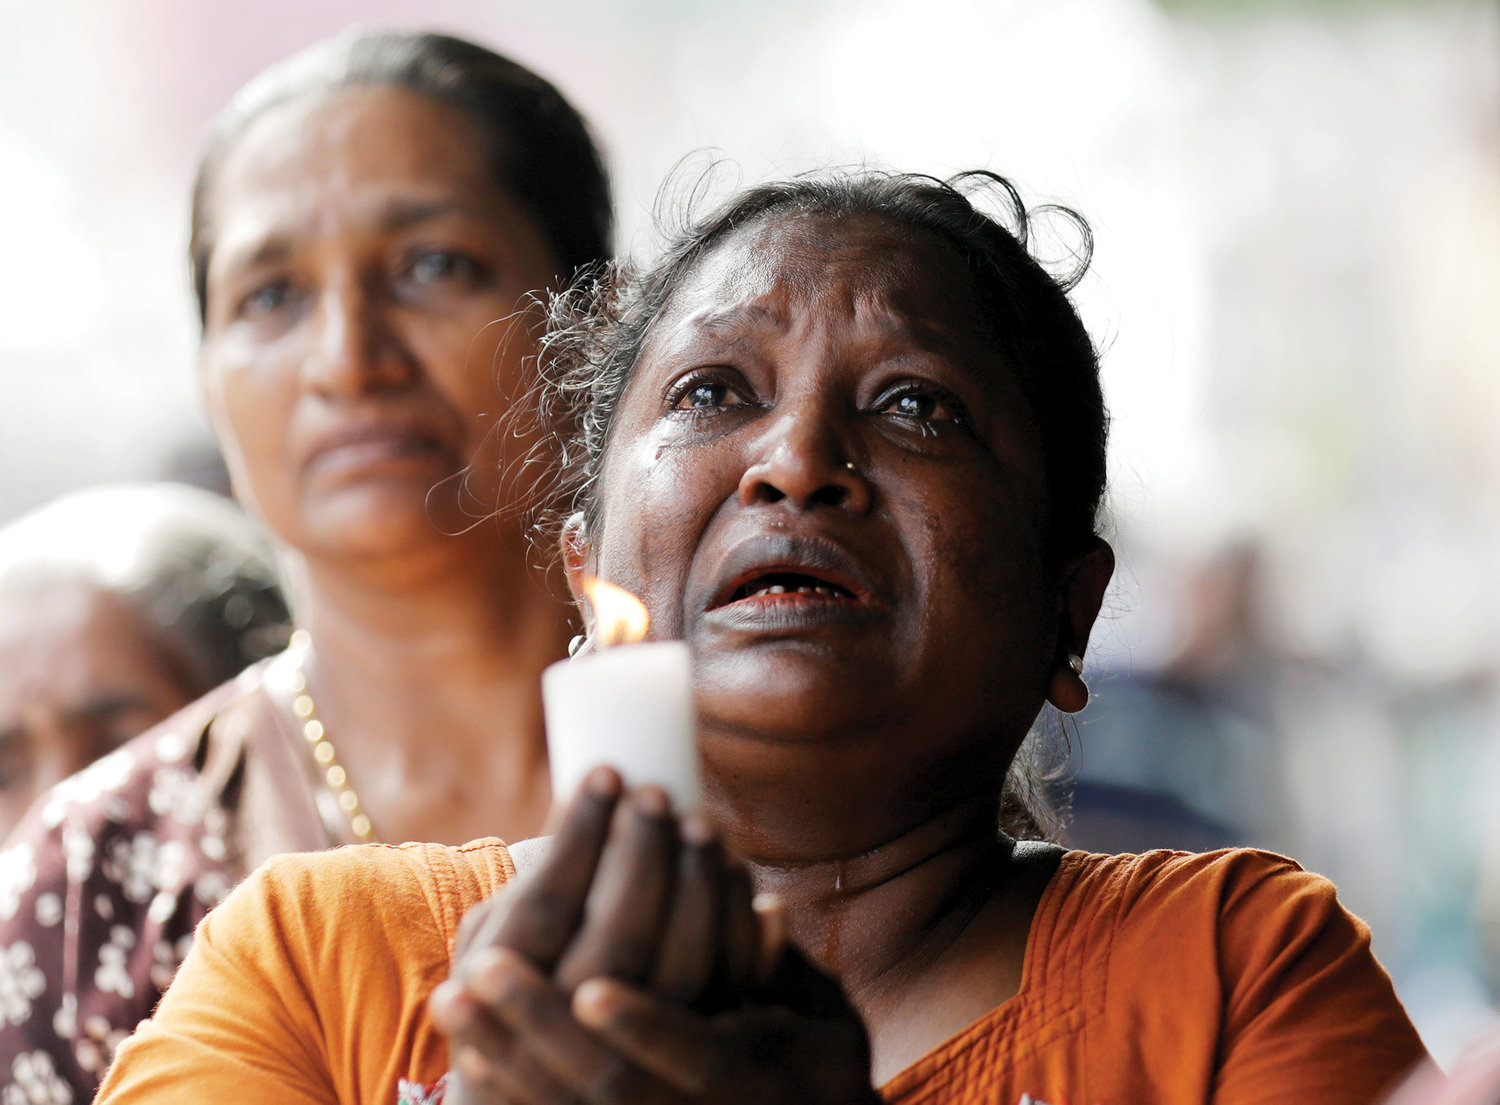 A woman weeps during a memorial service for victims in Colombo, Sri Lanka, April 23, two days after a string of deadly bomb attacks on churches and luxury hotels across the island.